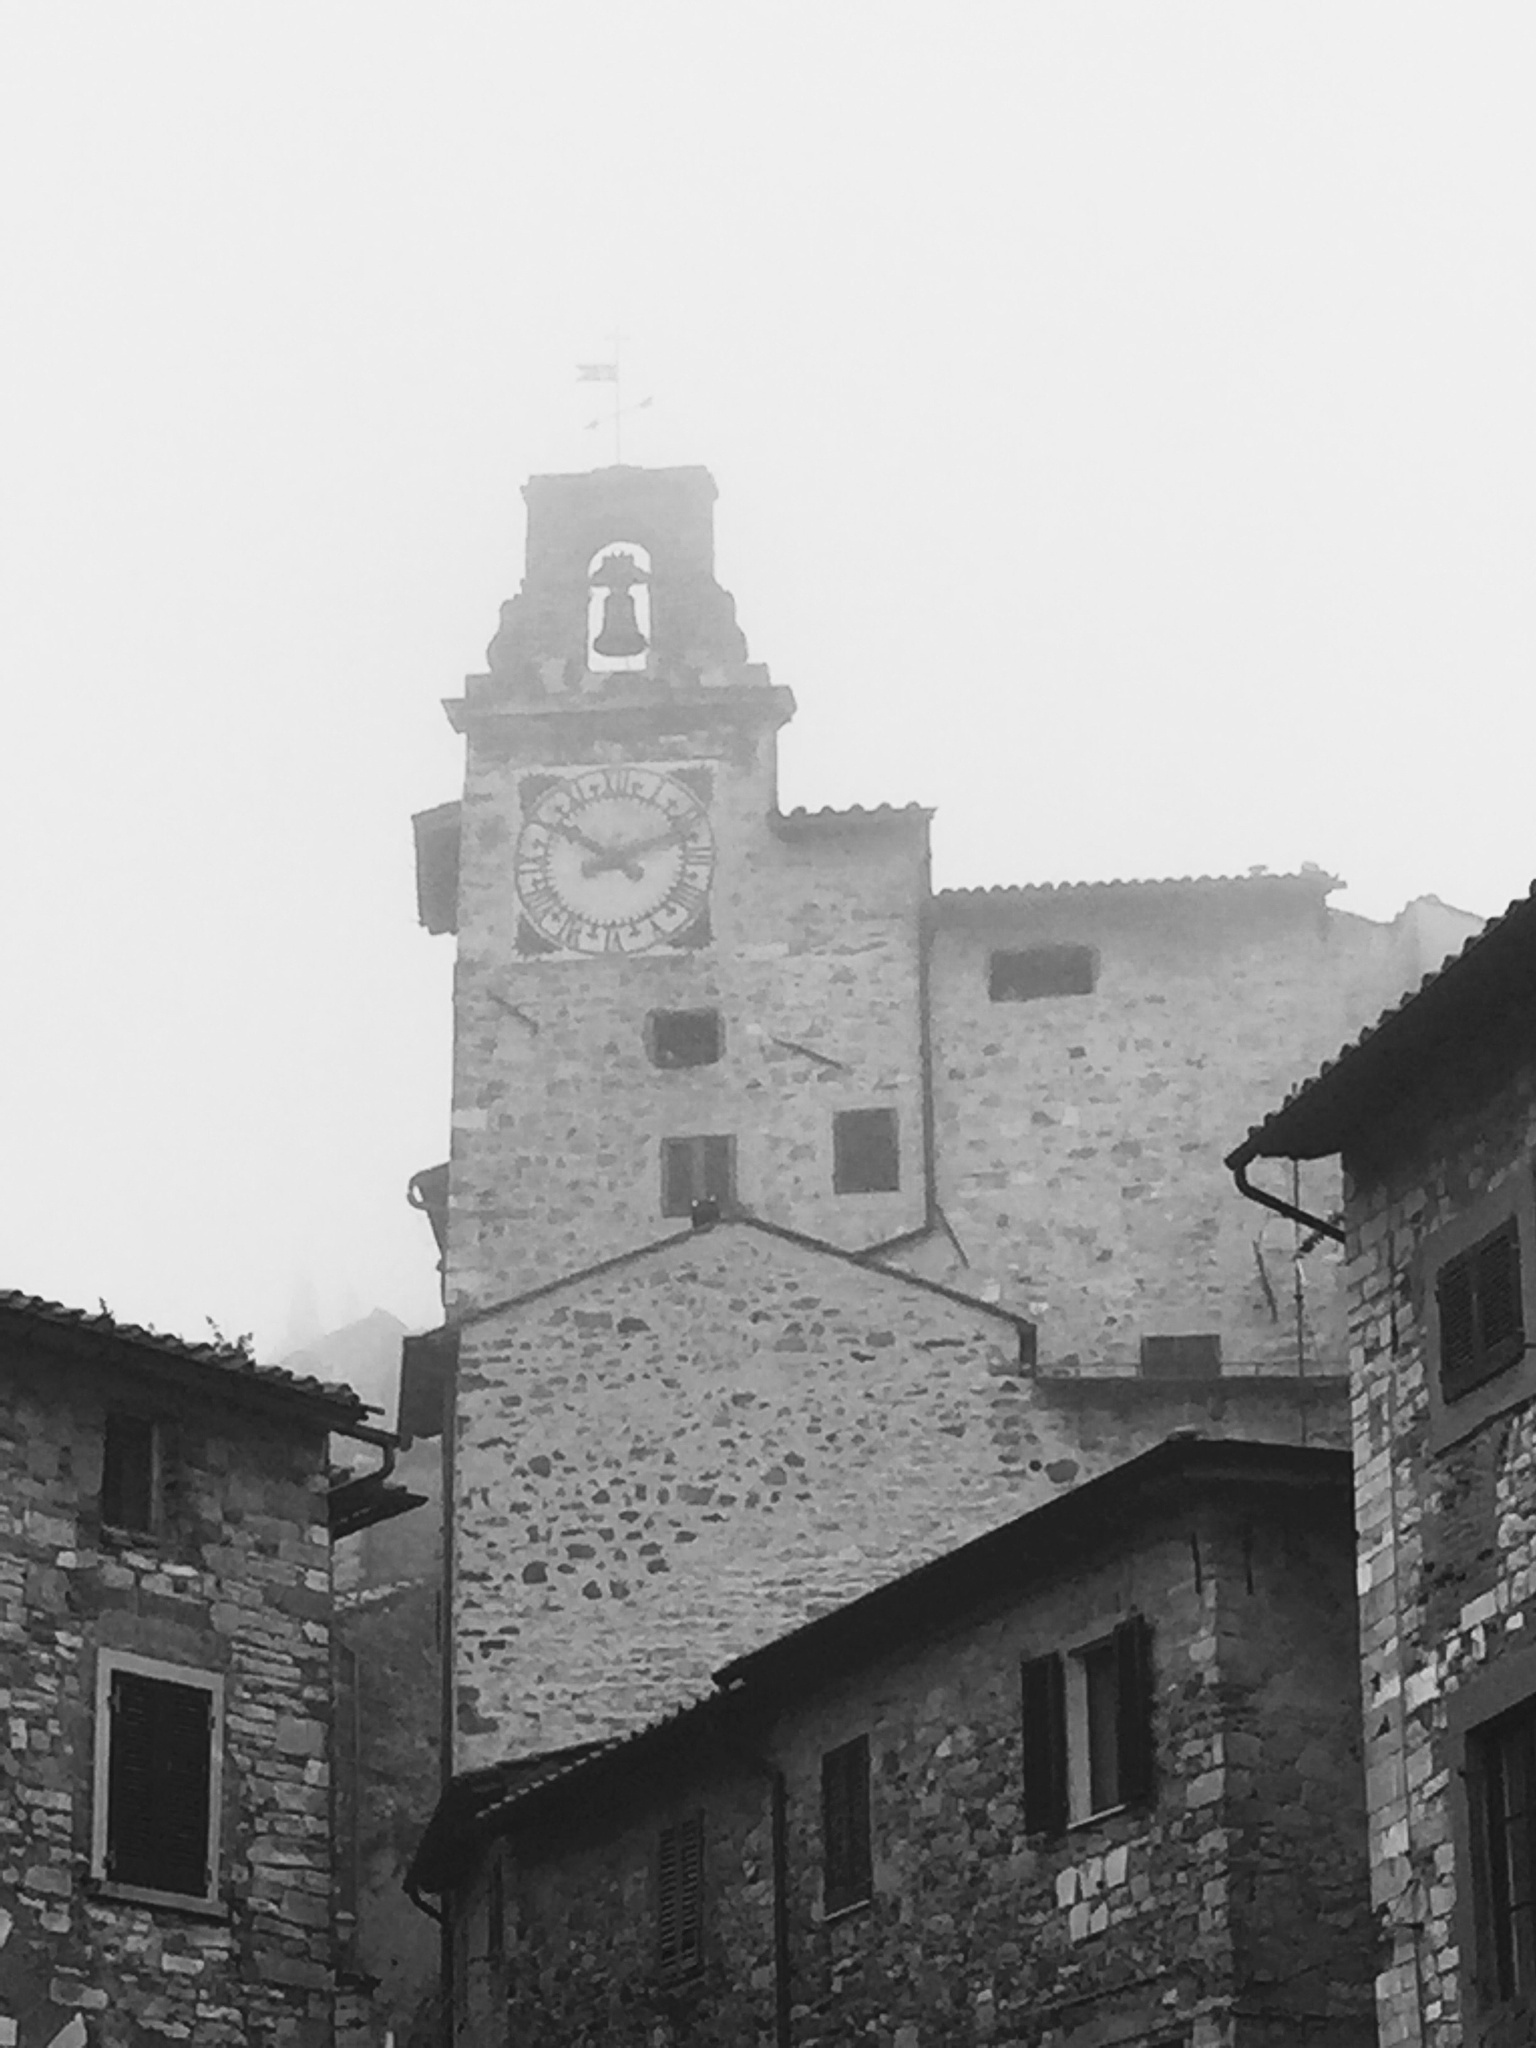 The bells tower in a foggy day by giorgiomorrone